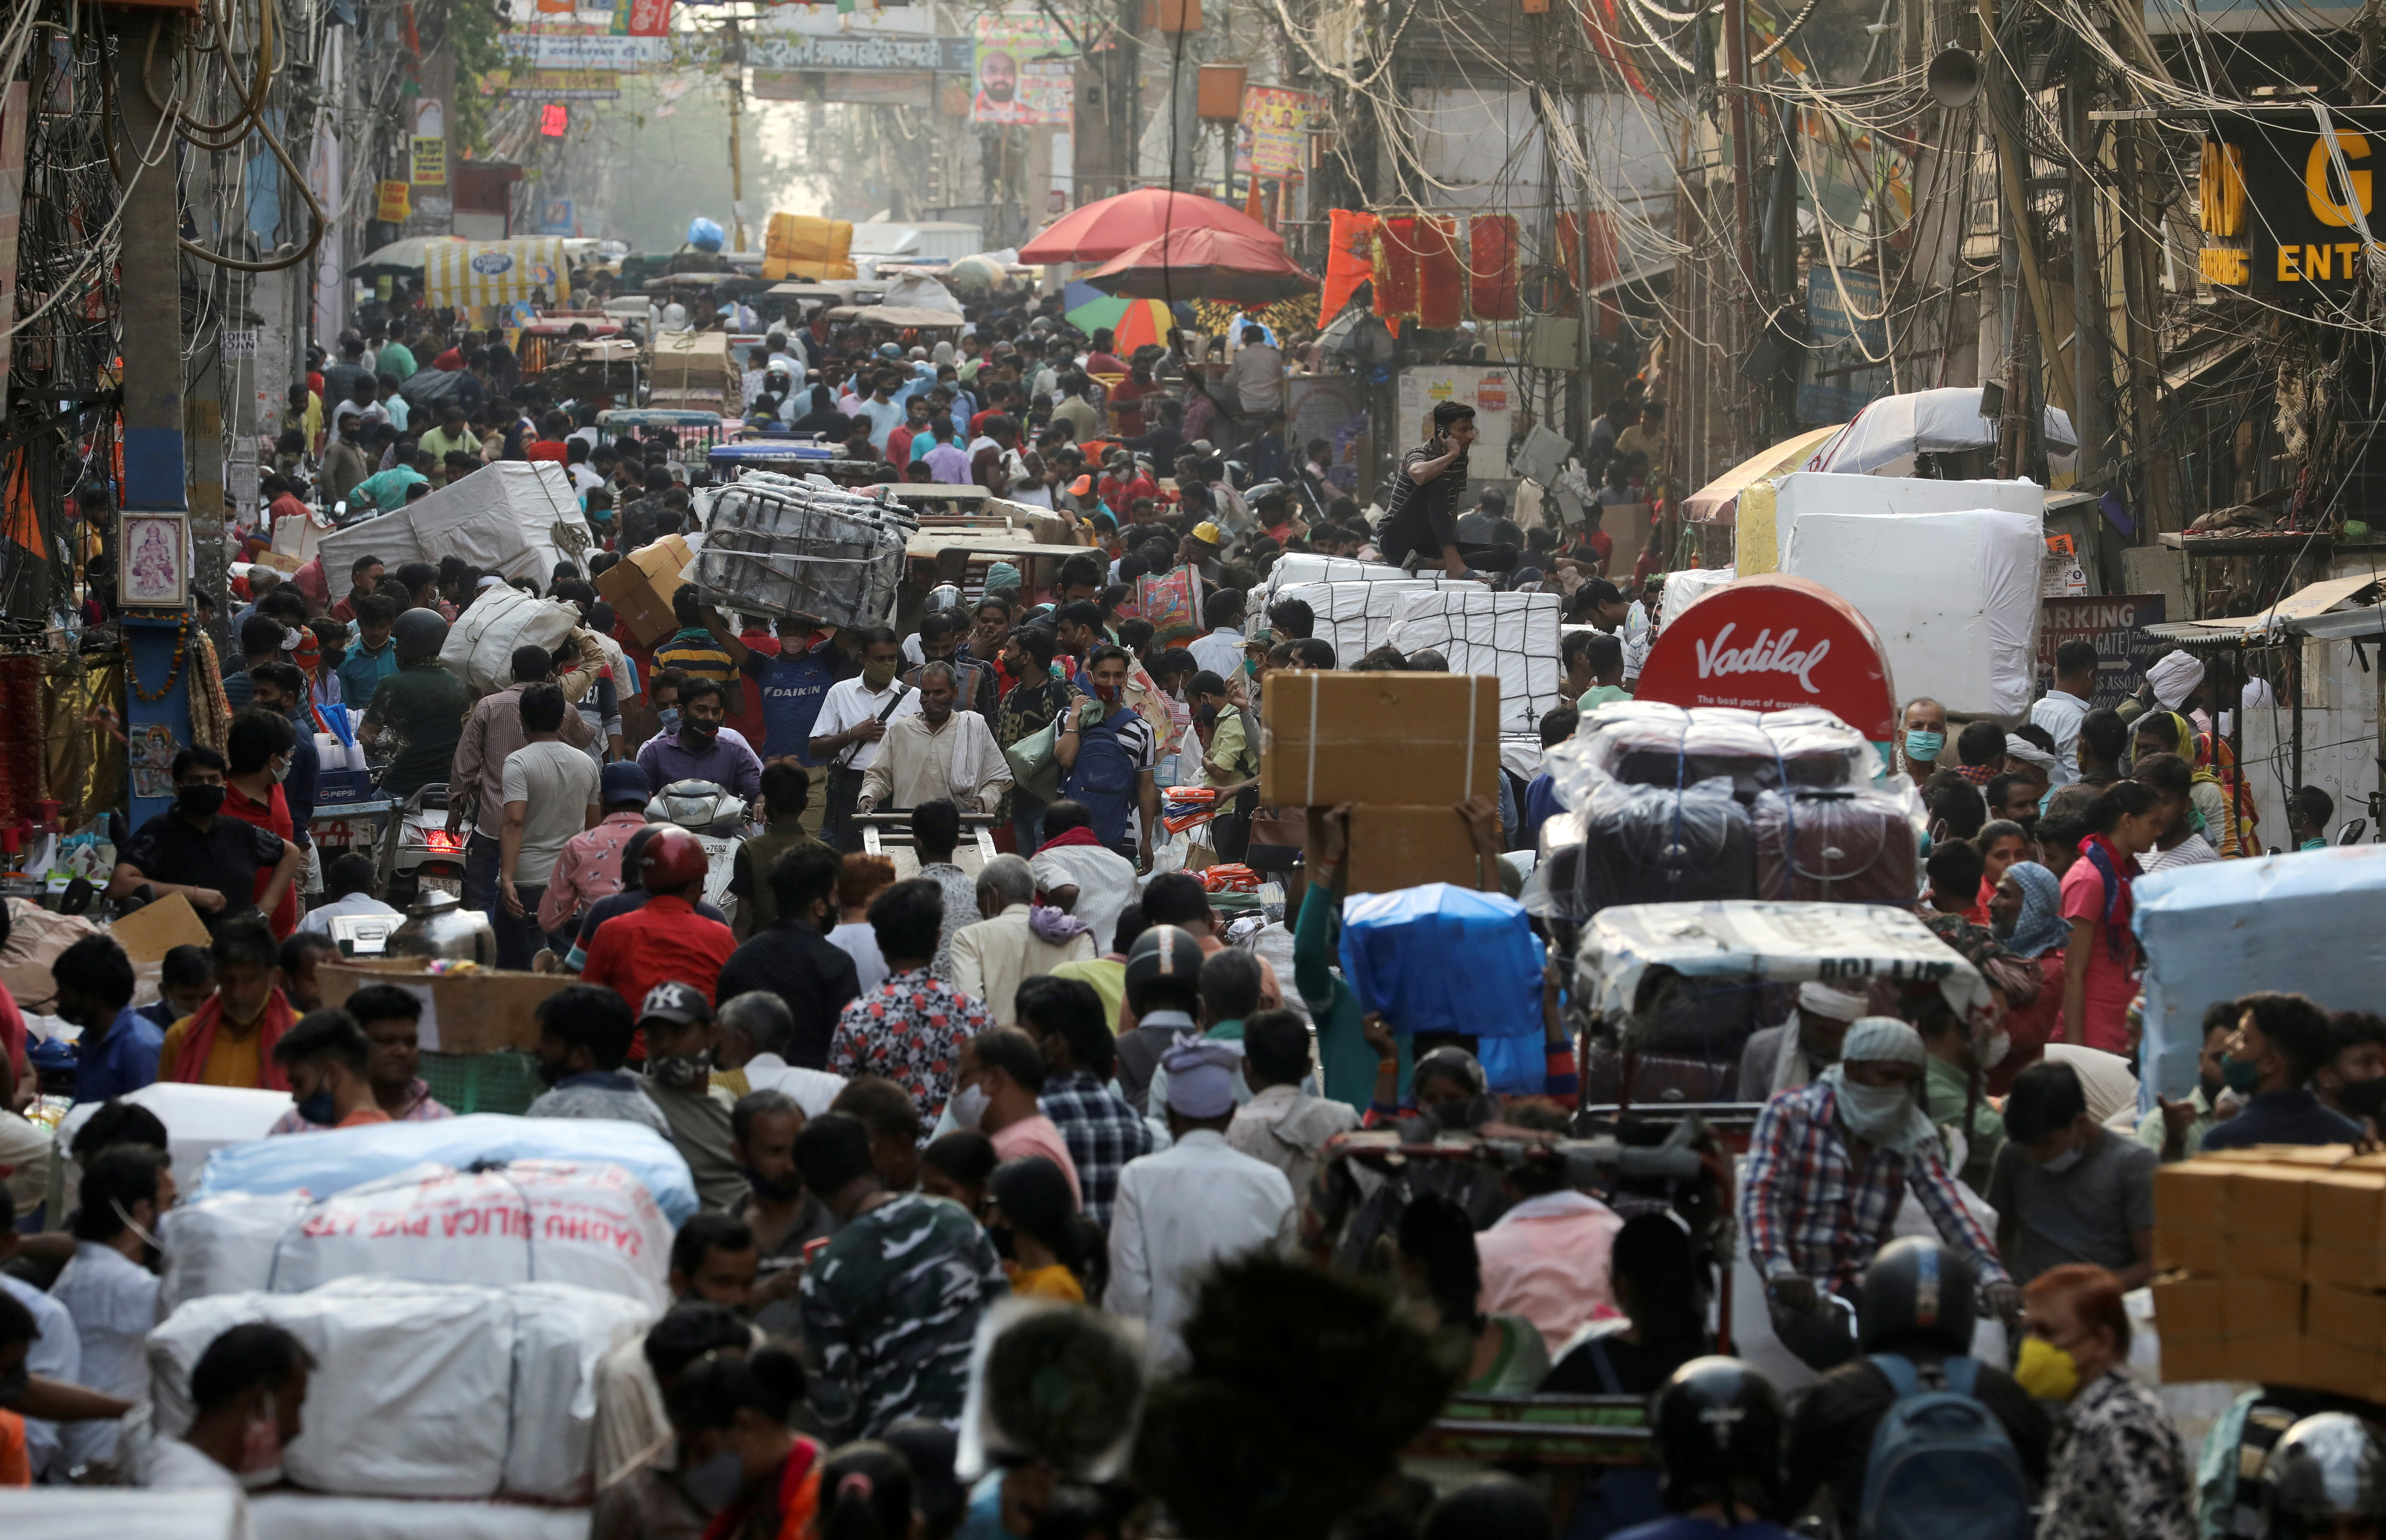 People walk at a crowded market amidst the spread of the coronavirus disease (COVID-19), in the old quarters of Delhi, India, April 6, 2021. REUTERS/Anushree Fadnavis/File Photo